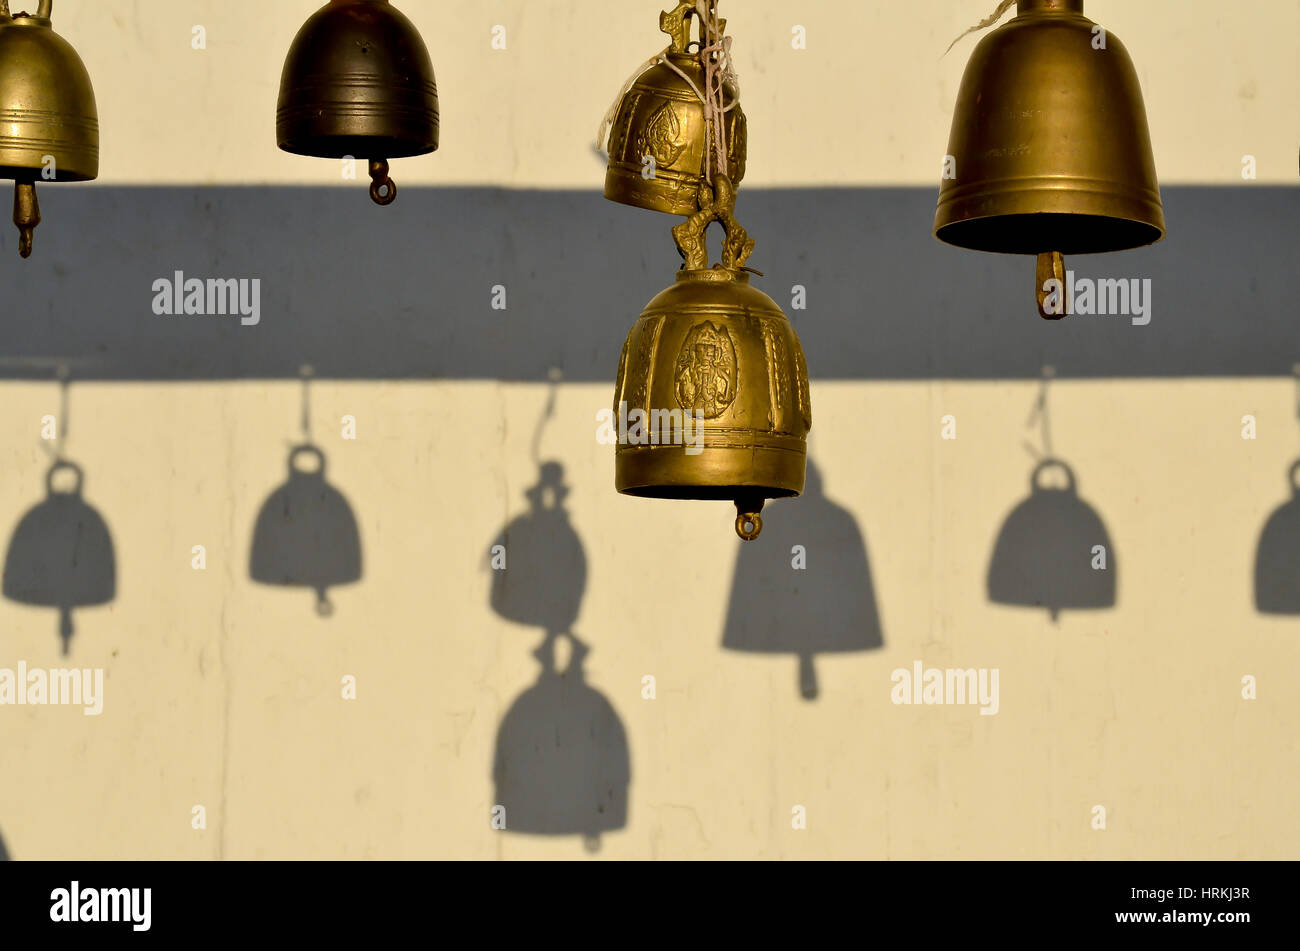 little bells in a wat in bangkok, thailand - Stock Image